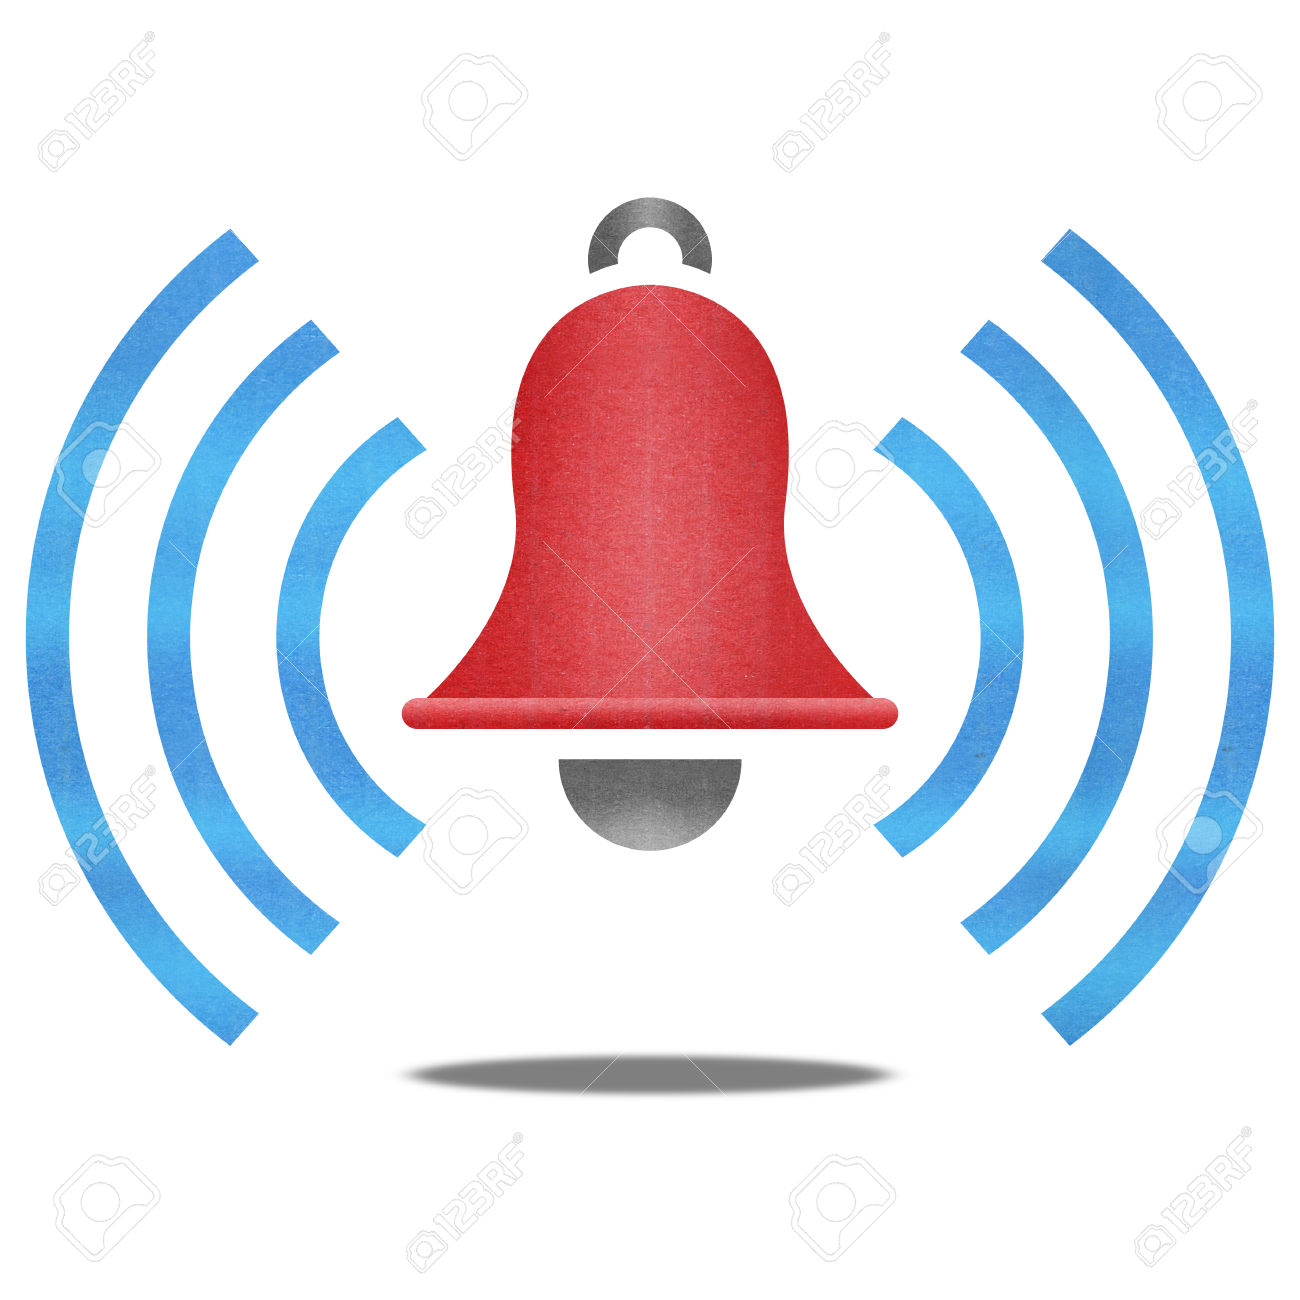 The Paper Cut Of Red Alarm Bell With Blue Signal Is Alert Symbol.